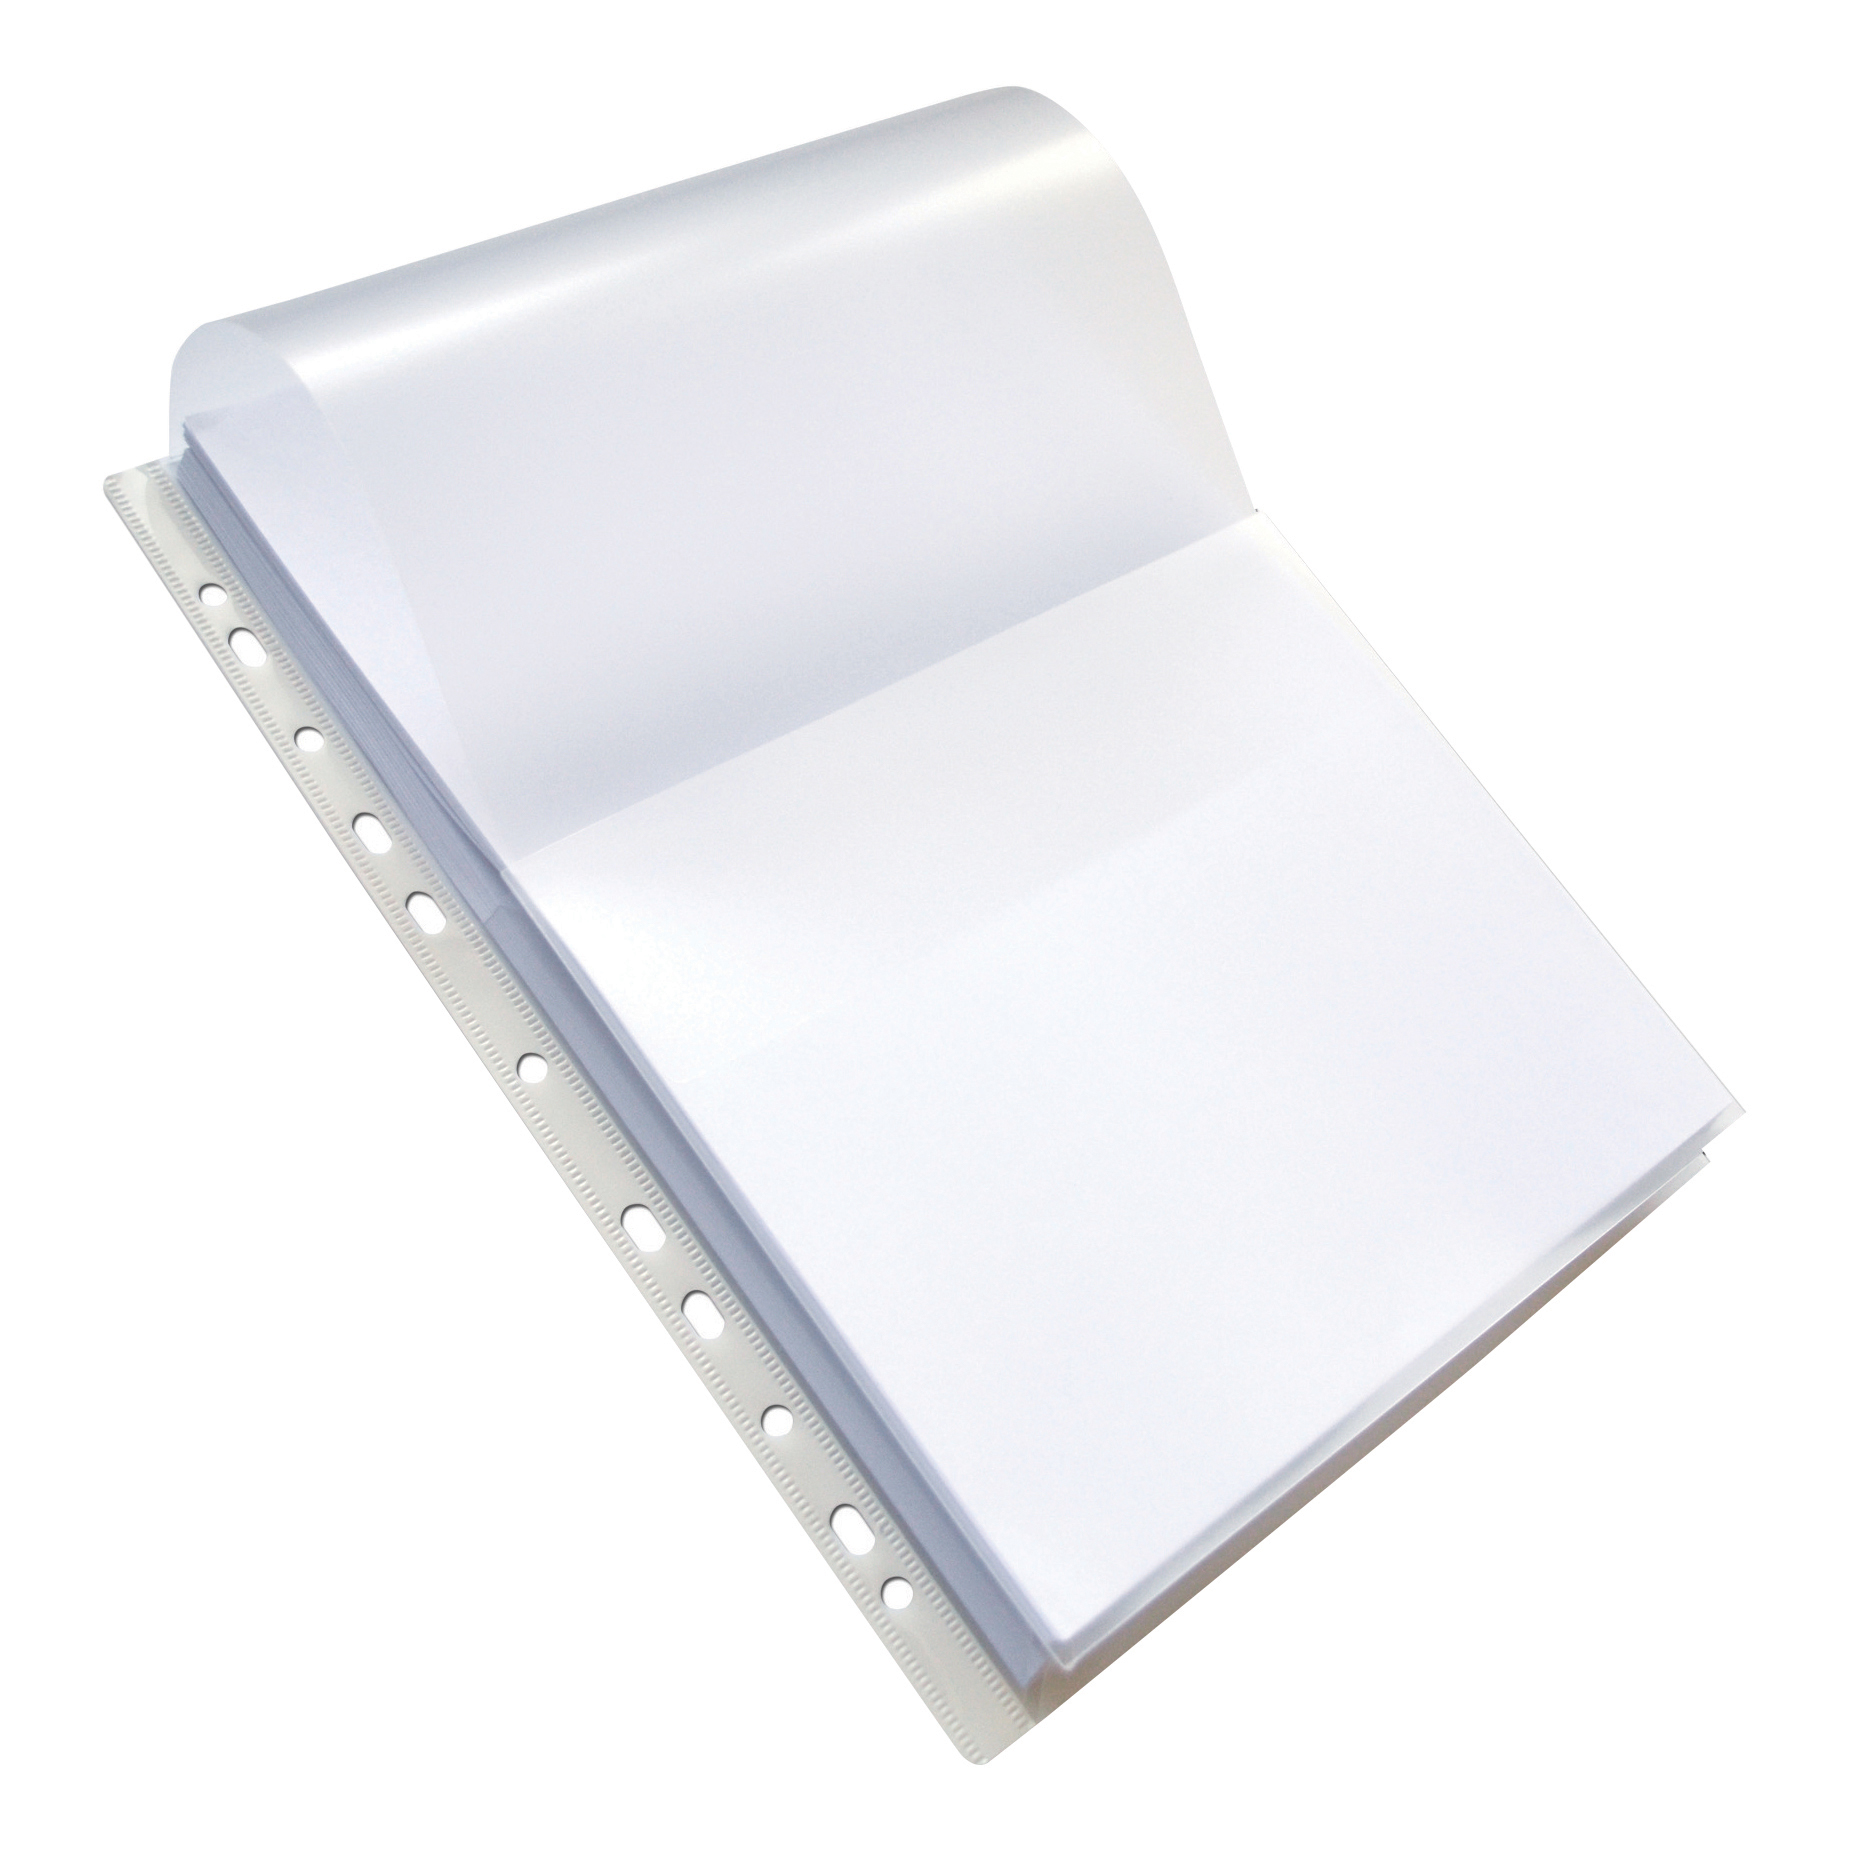 Oxford Expanding Pchd Pocket Extra Capacity Polyprop with Flap 180 Micron A4 Clr Ref 100080754 [Pack 10]